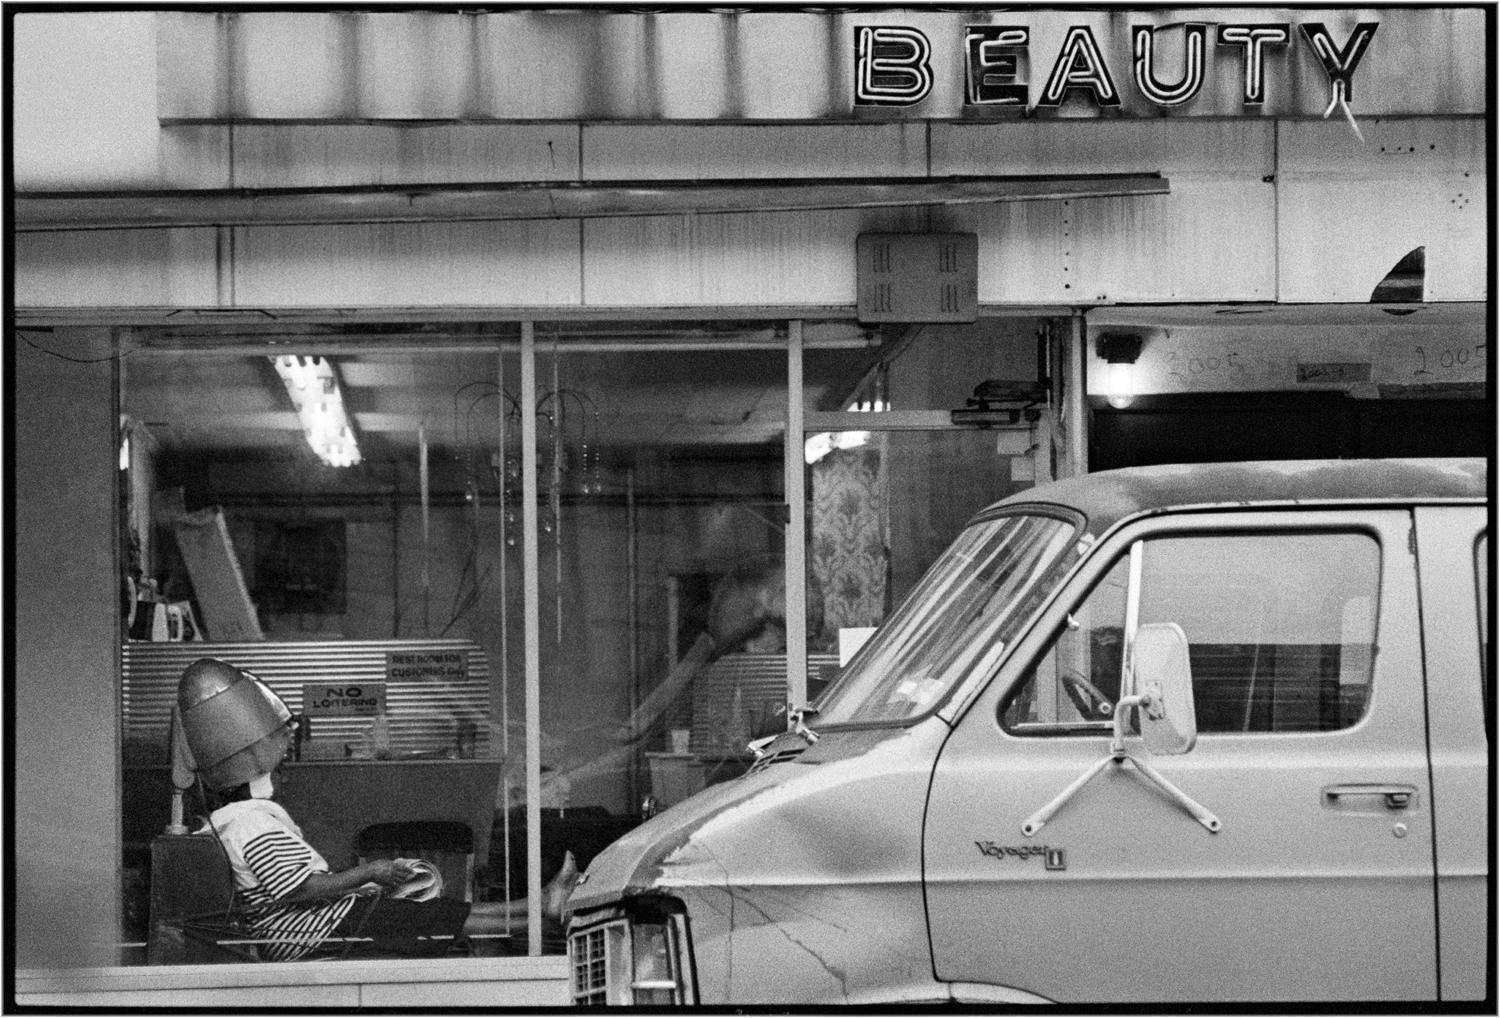 *BEAUTY-Harlem-8000-1988 copy